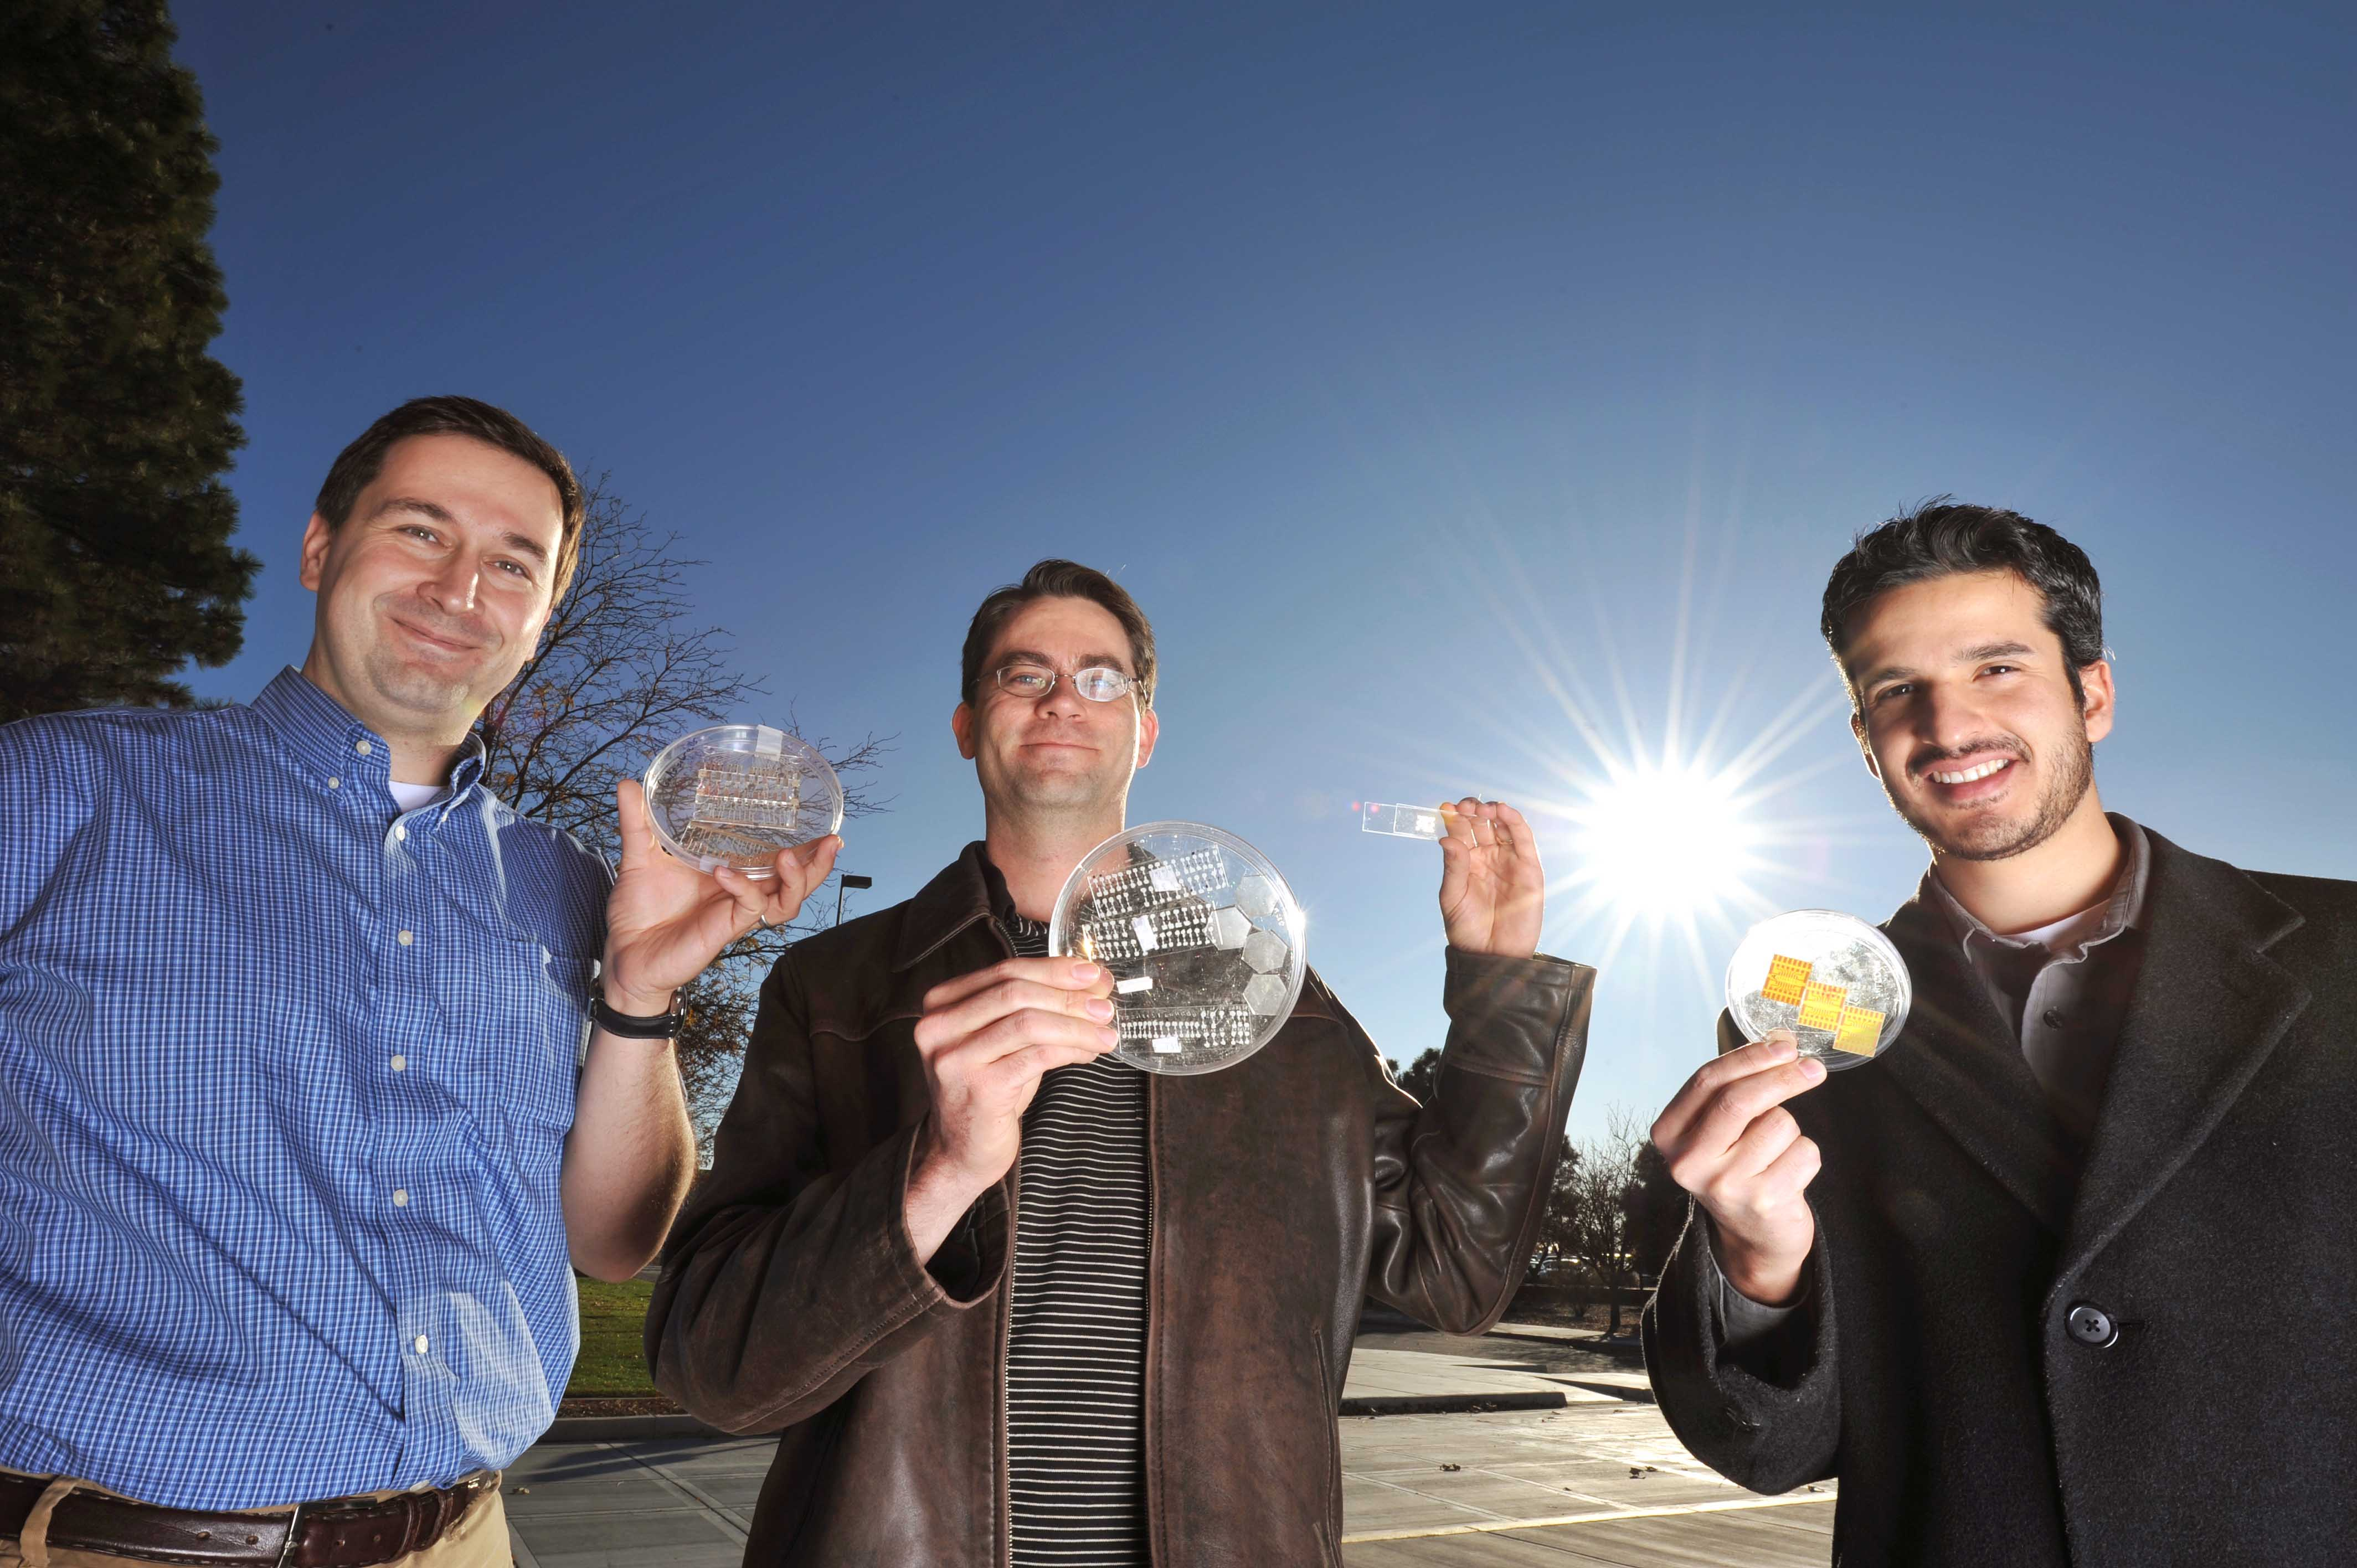 Jose Luis Cruz-Campa (right) along with fellow Sandia re-searchers Murat OKandan (left) and Greg Nielson (center) hold samples containing arrays of microsystems-enabled photovoltaic (MEPV) cells. (Photo by Randy Montoya)